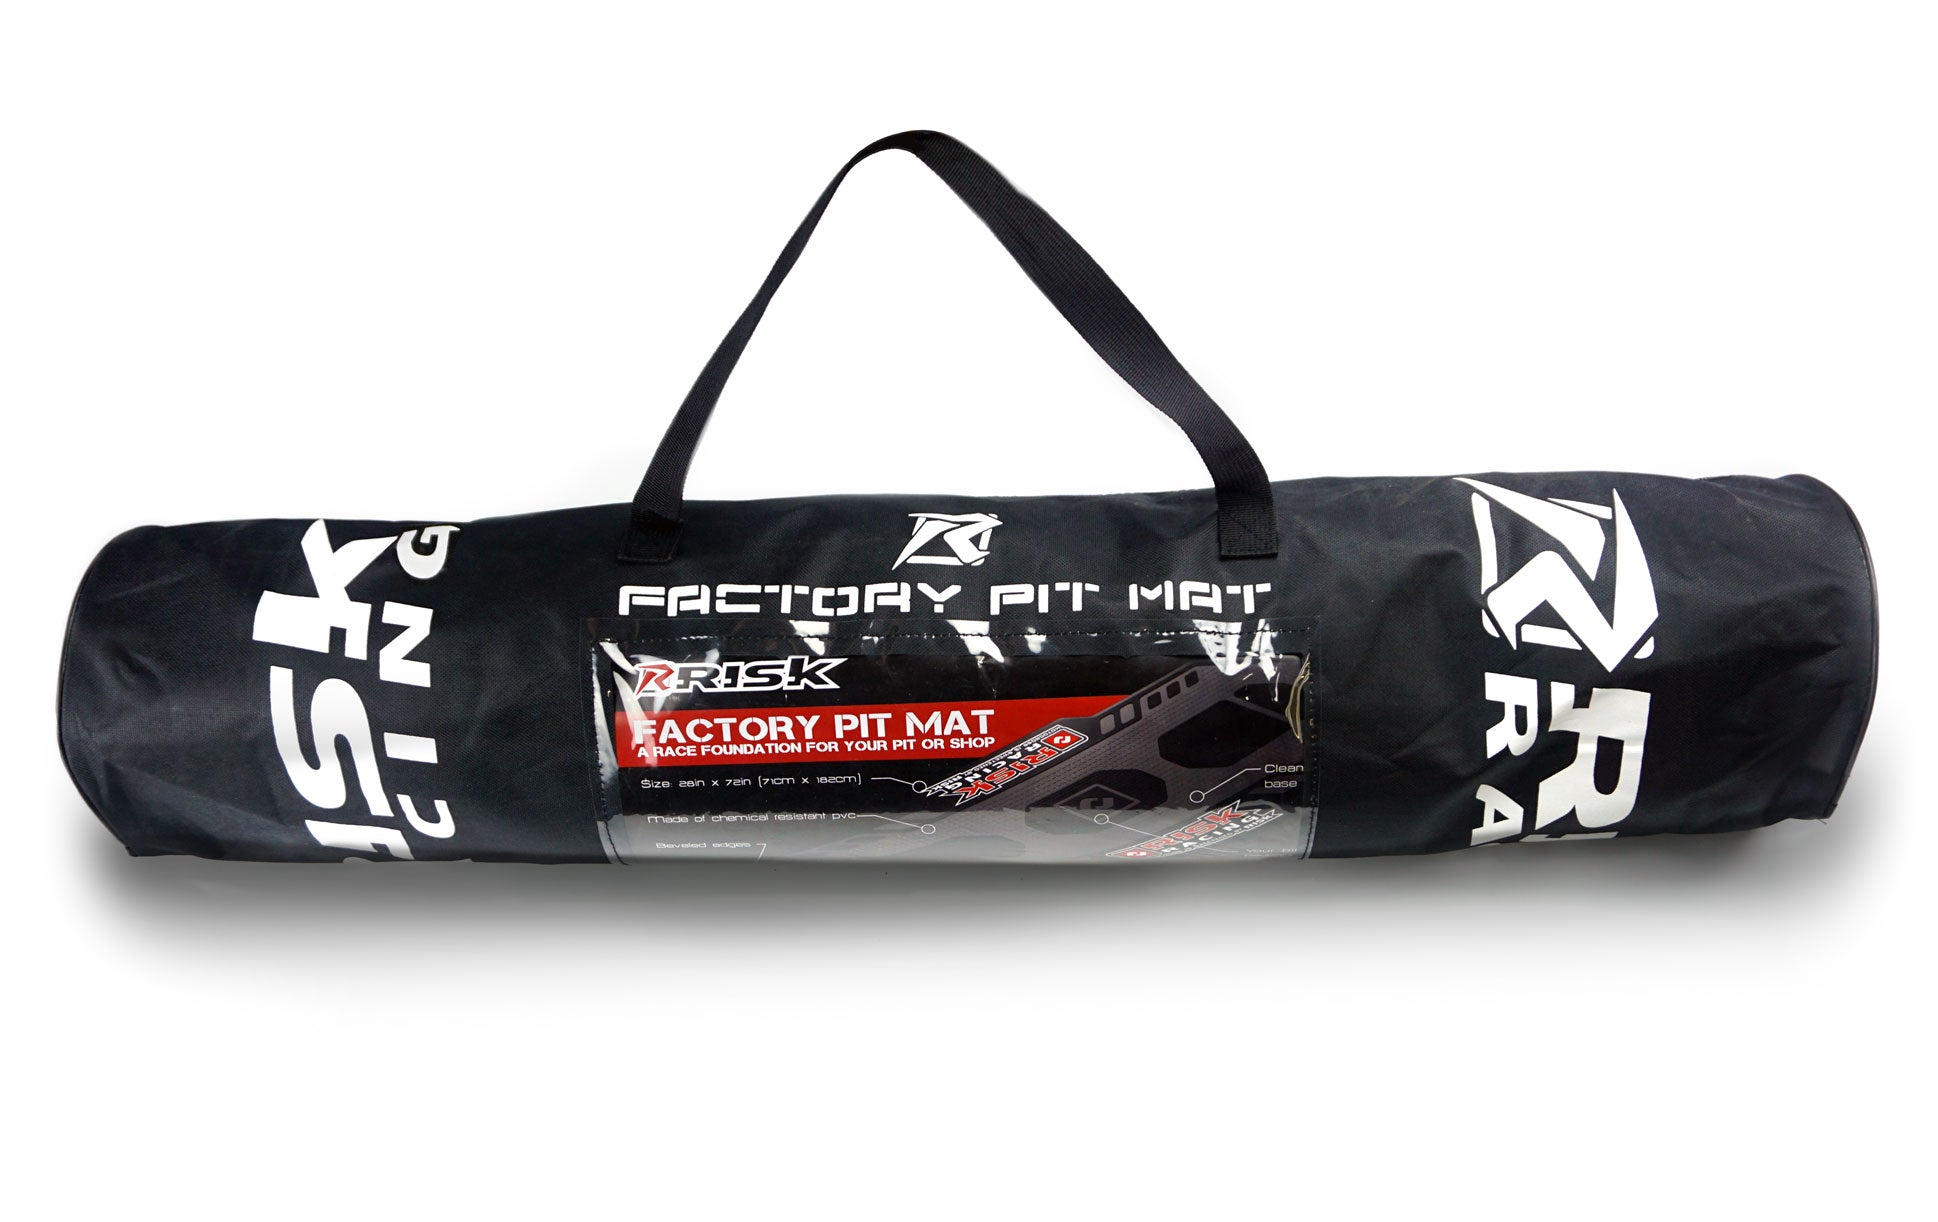 Risk Racing Factory Pit Mat Carrying Tote Bag